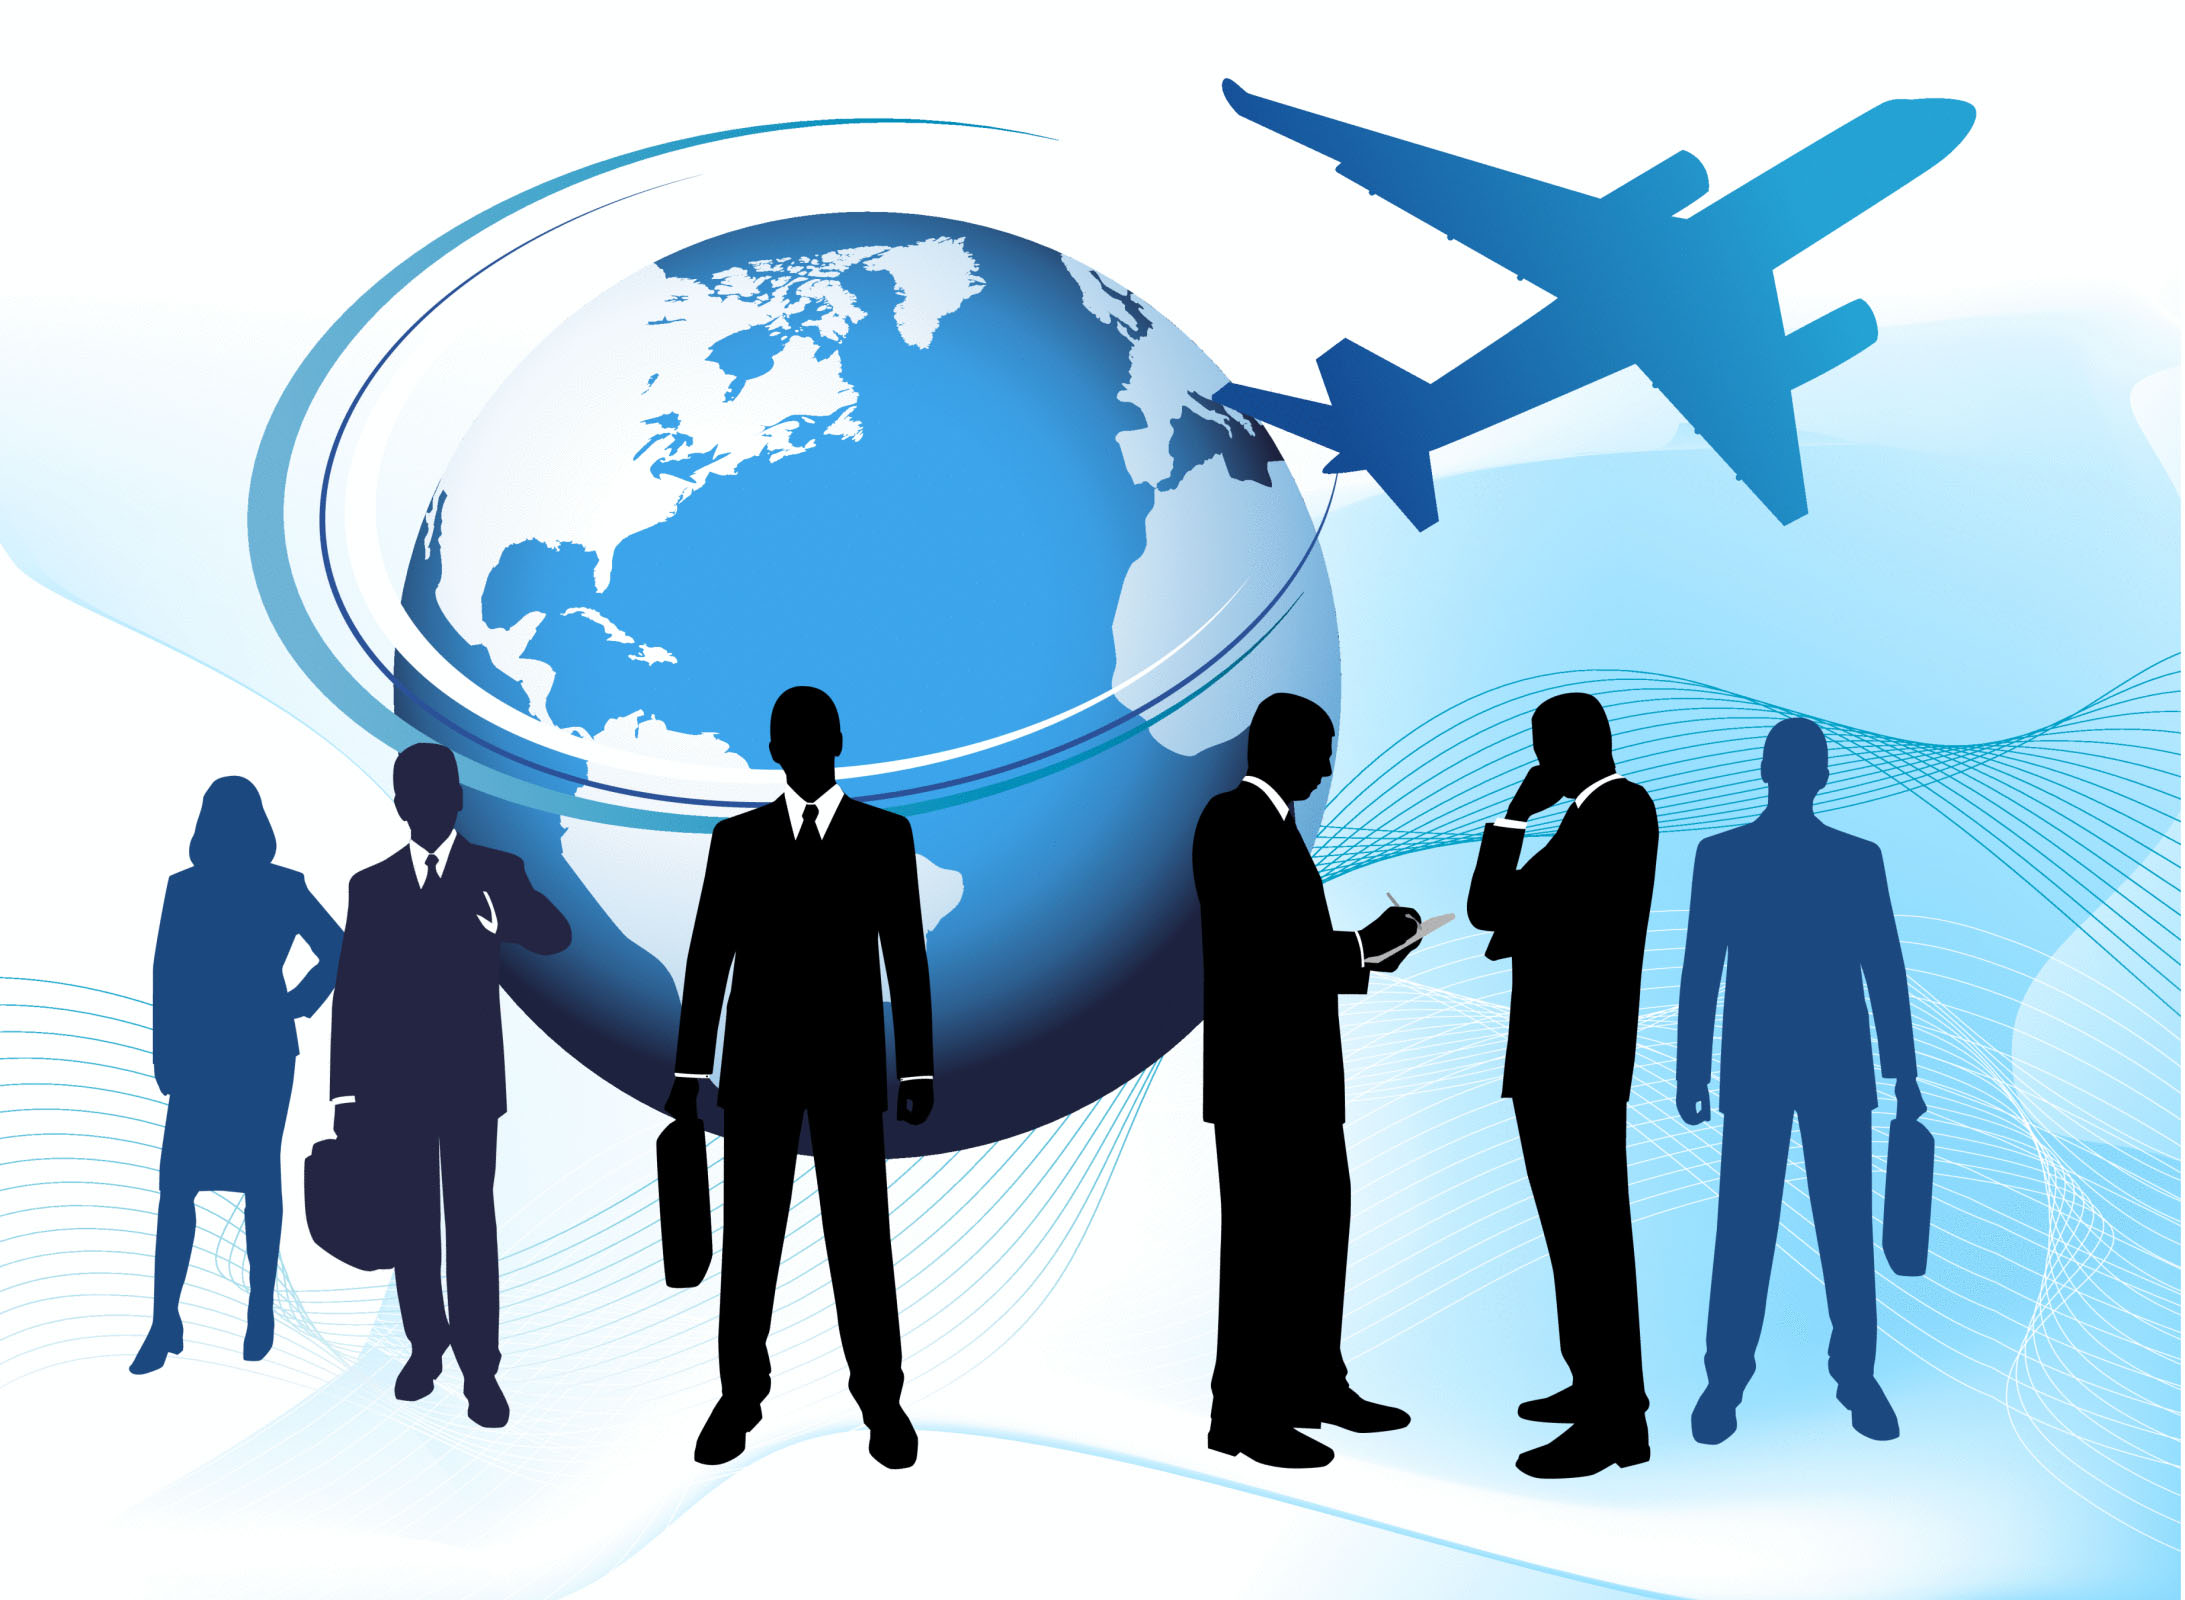 c7a686b1be0f 5 Terrible Sins Some Business Travelers Make - Business Post Nigeria